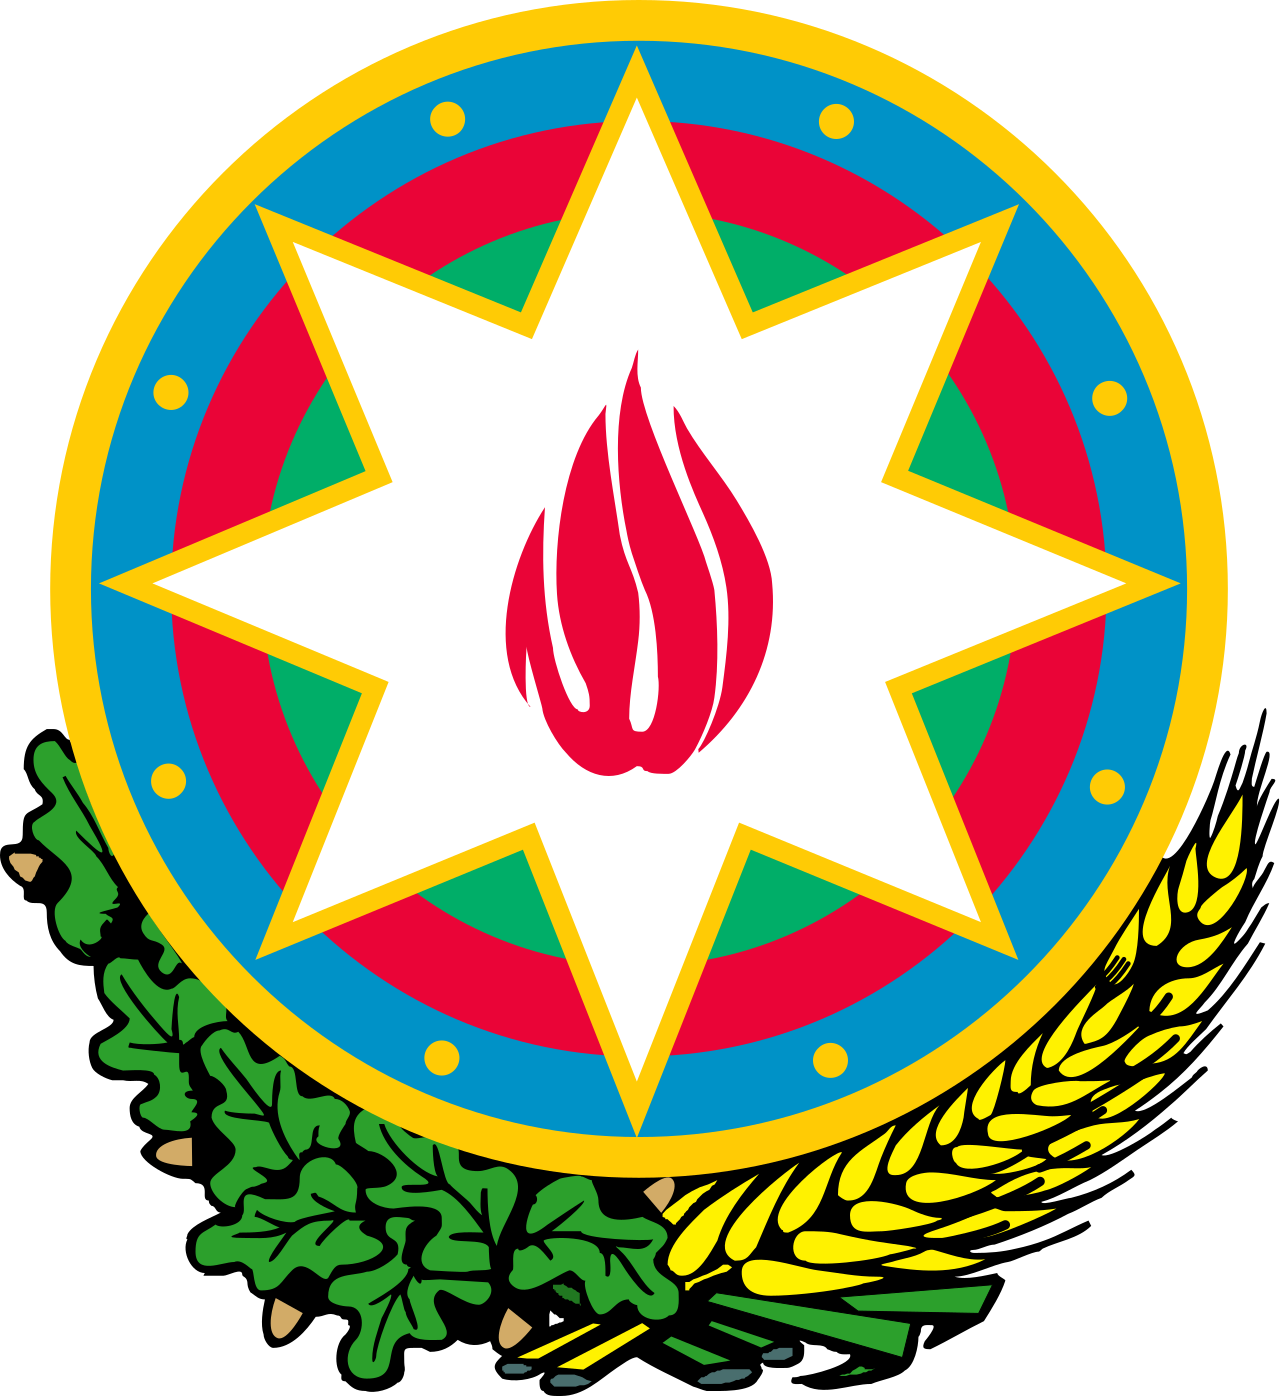 Azərbaycan  National Flag  logo (quantity 1 = 1 sets / 2 logo film /  Can replace of lights  other logos )